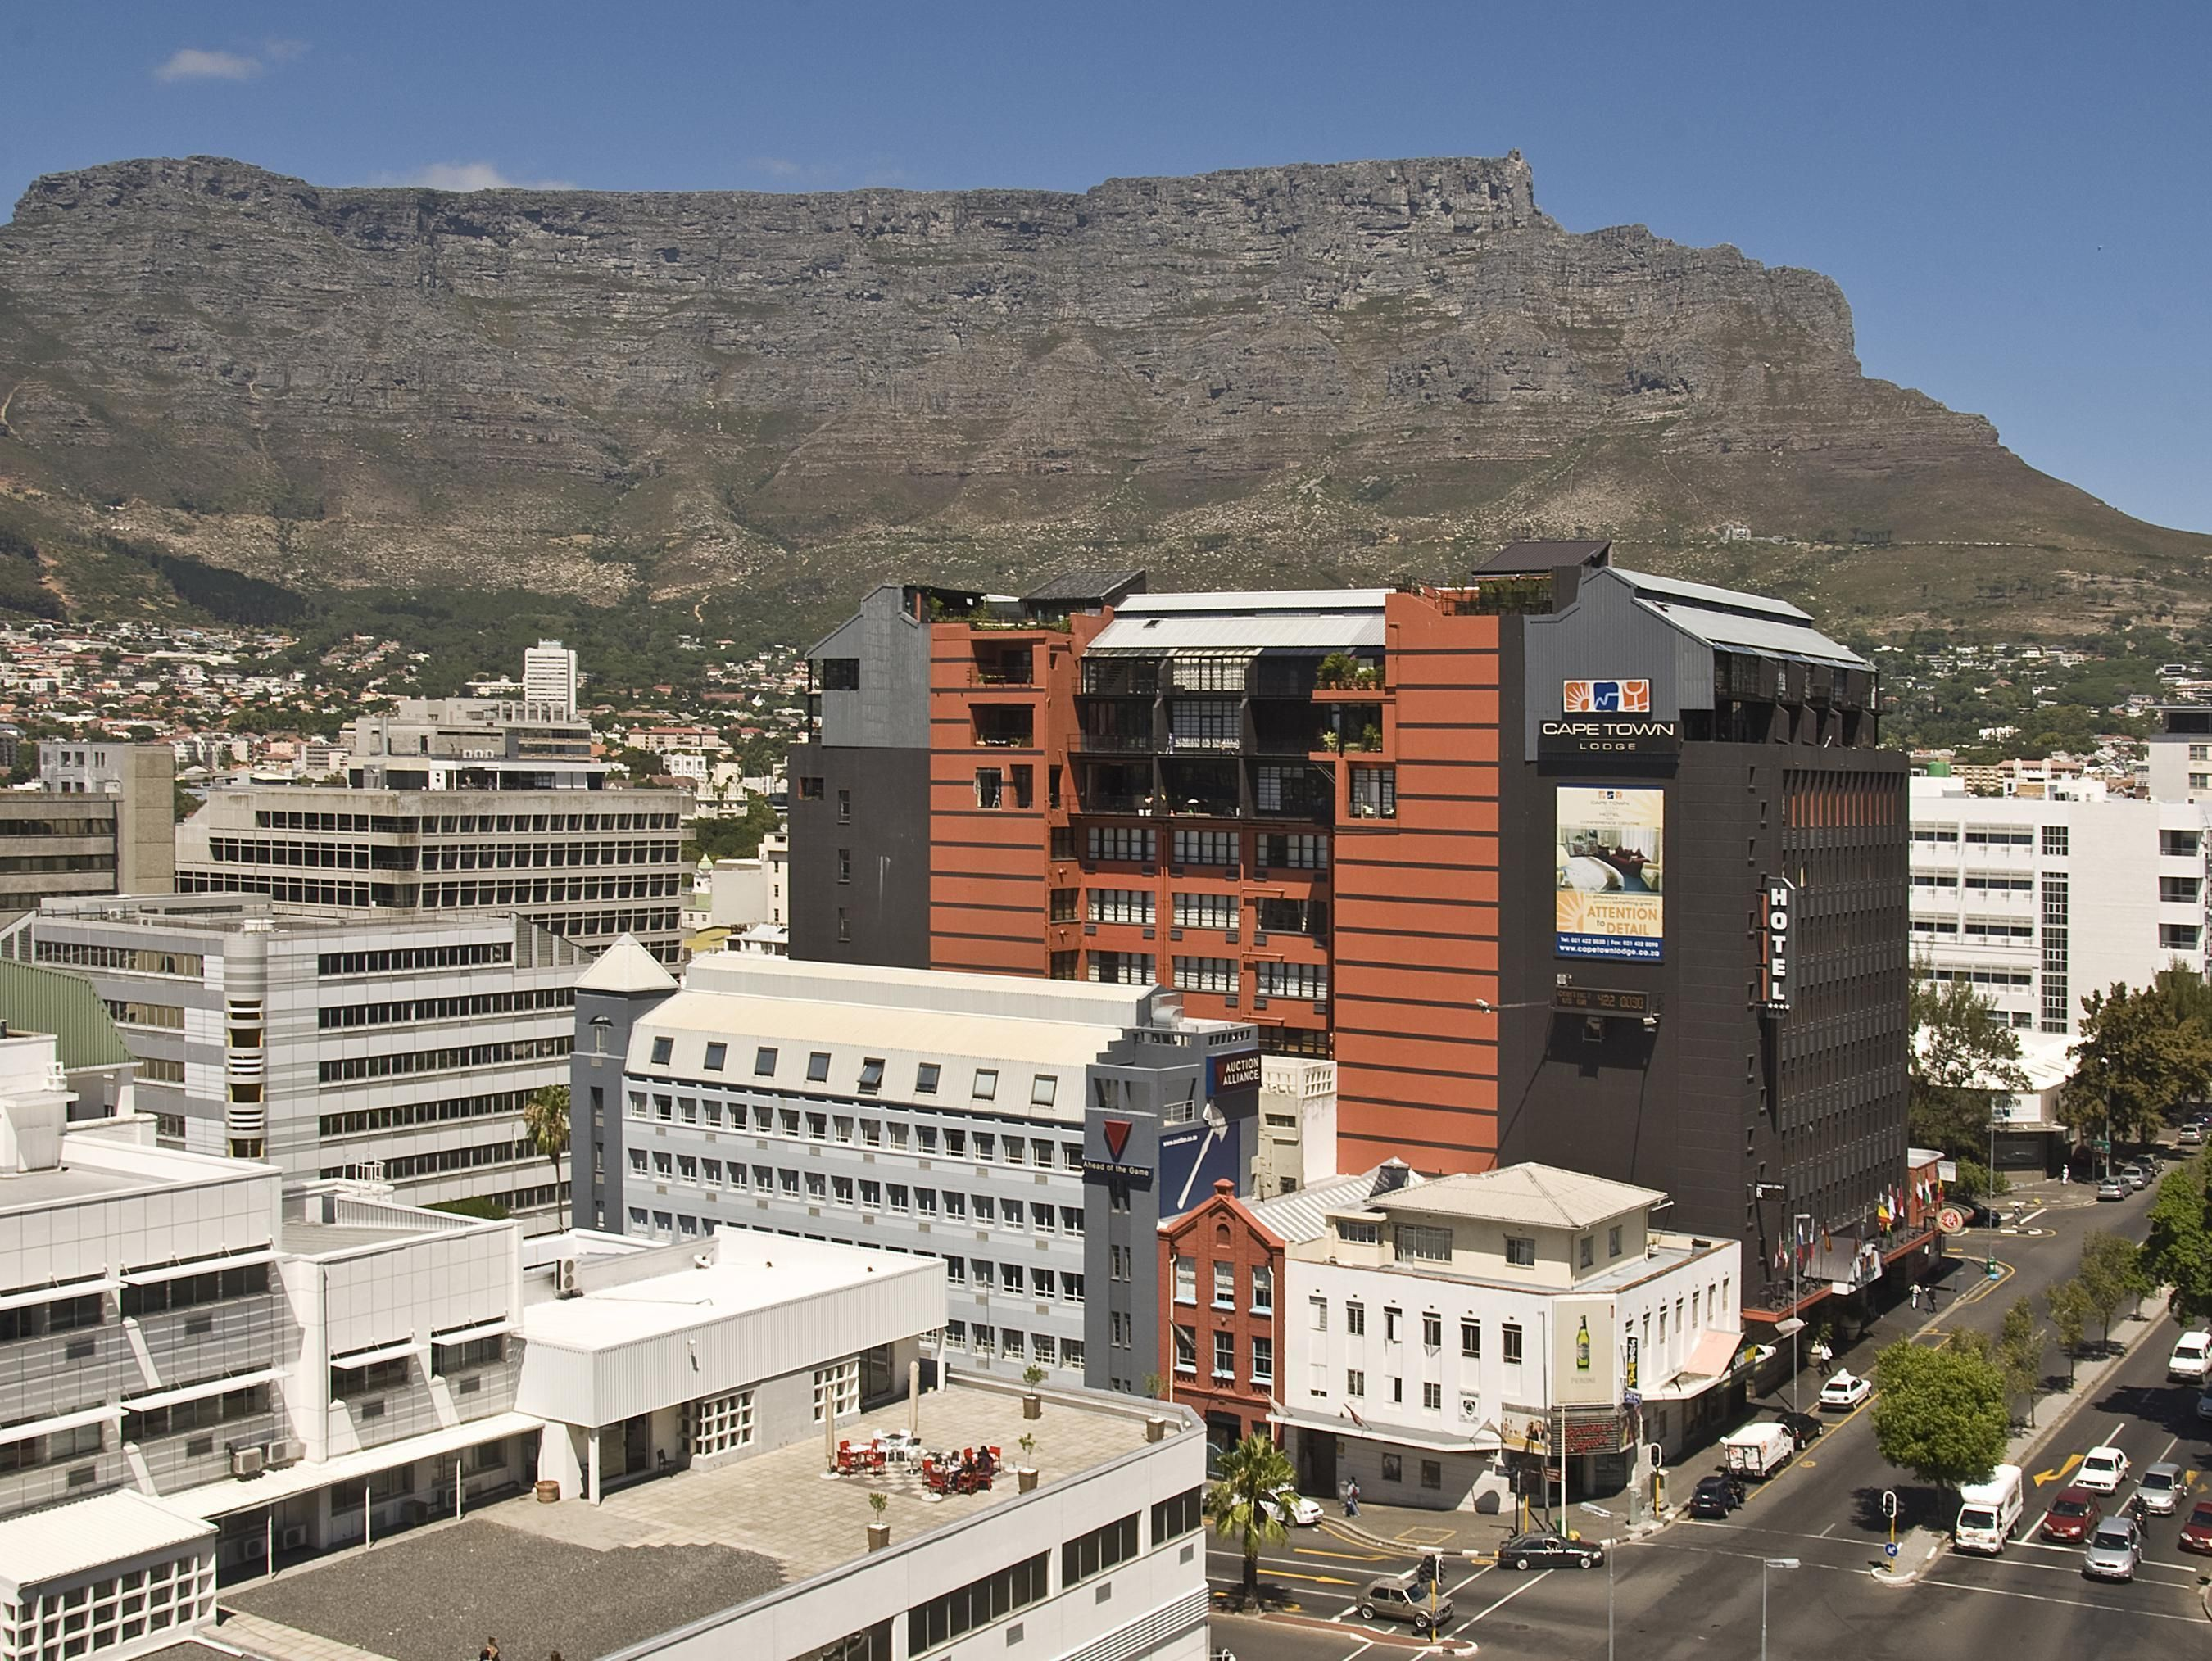 Cape town cape town lodge hotel south africa africa stop